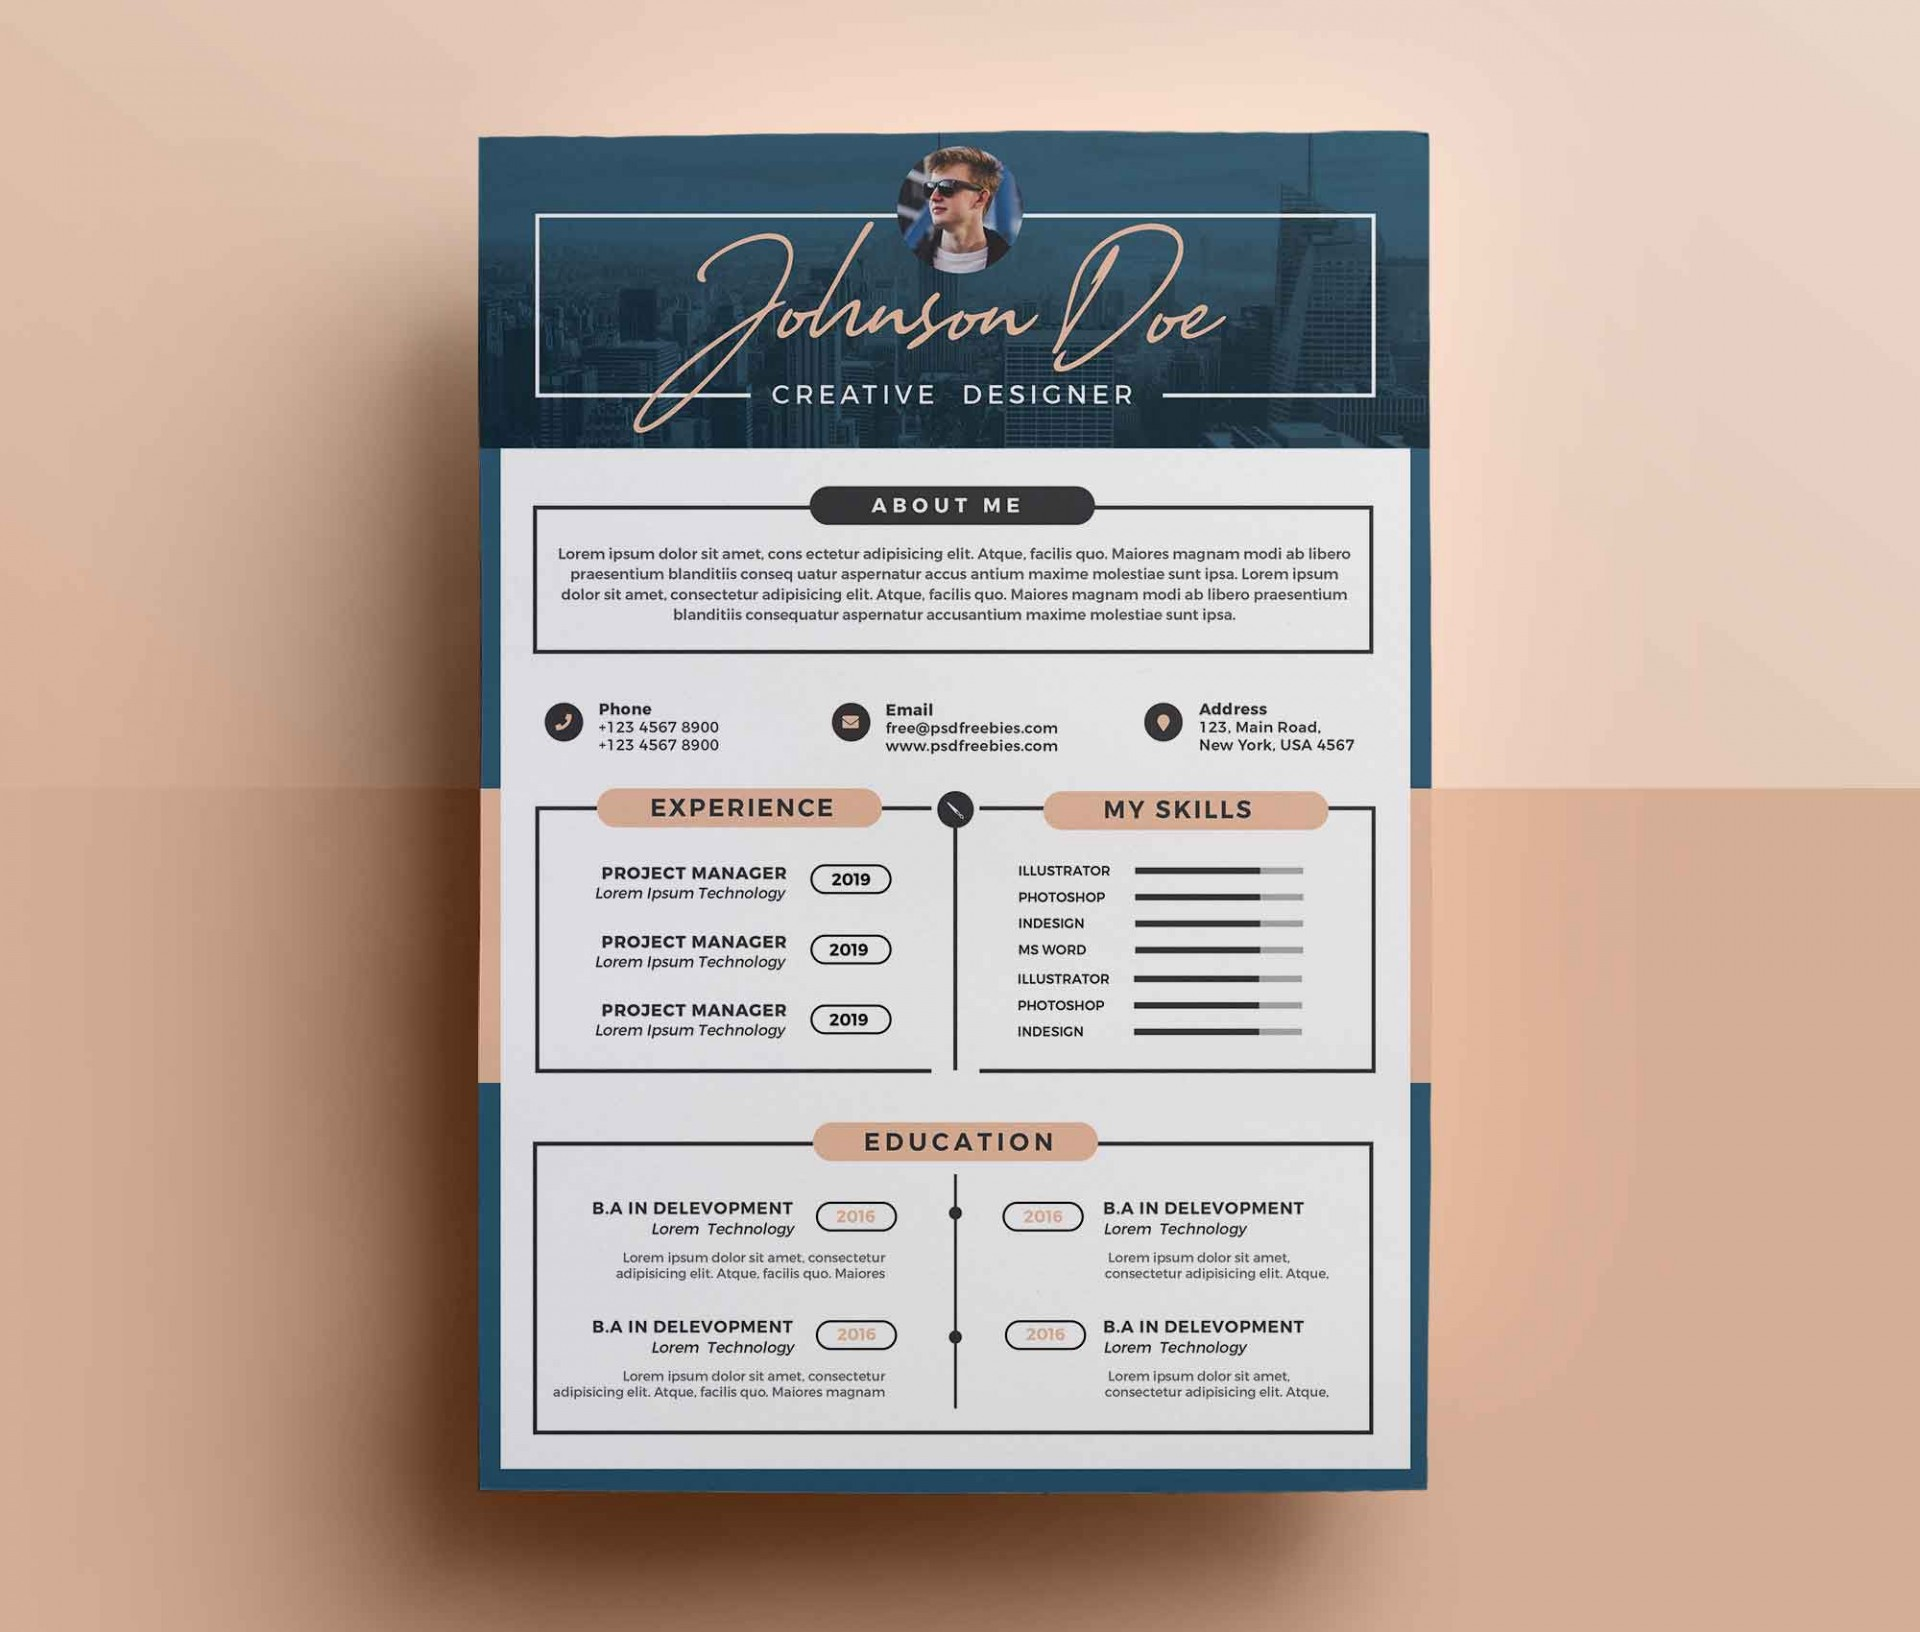 007 Fascinating Psd Cv Template Free Download Concept  2020 Graphic Designer Photoshop1920